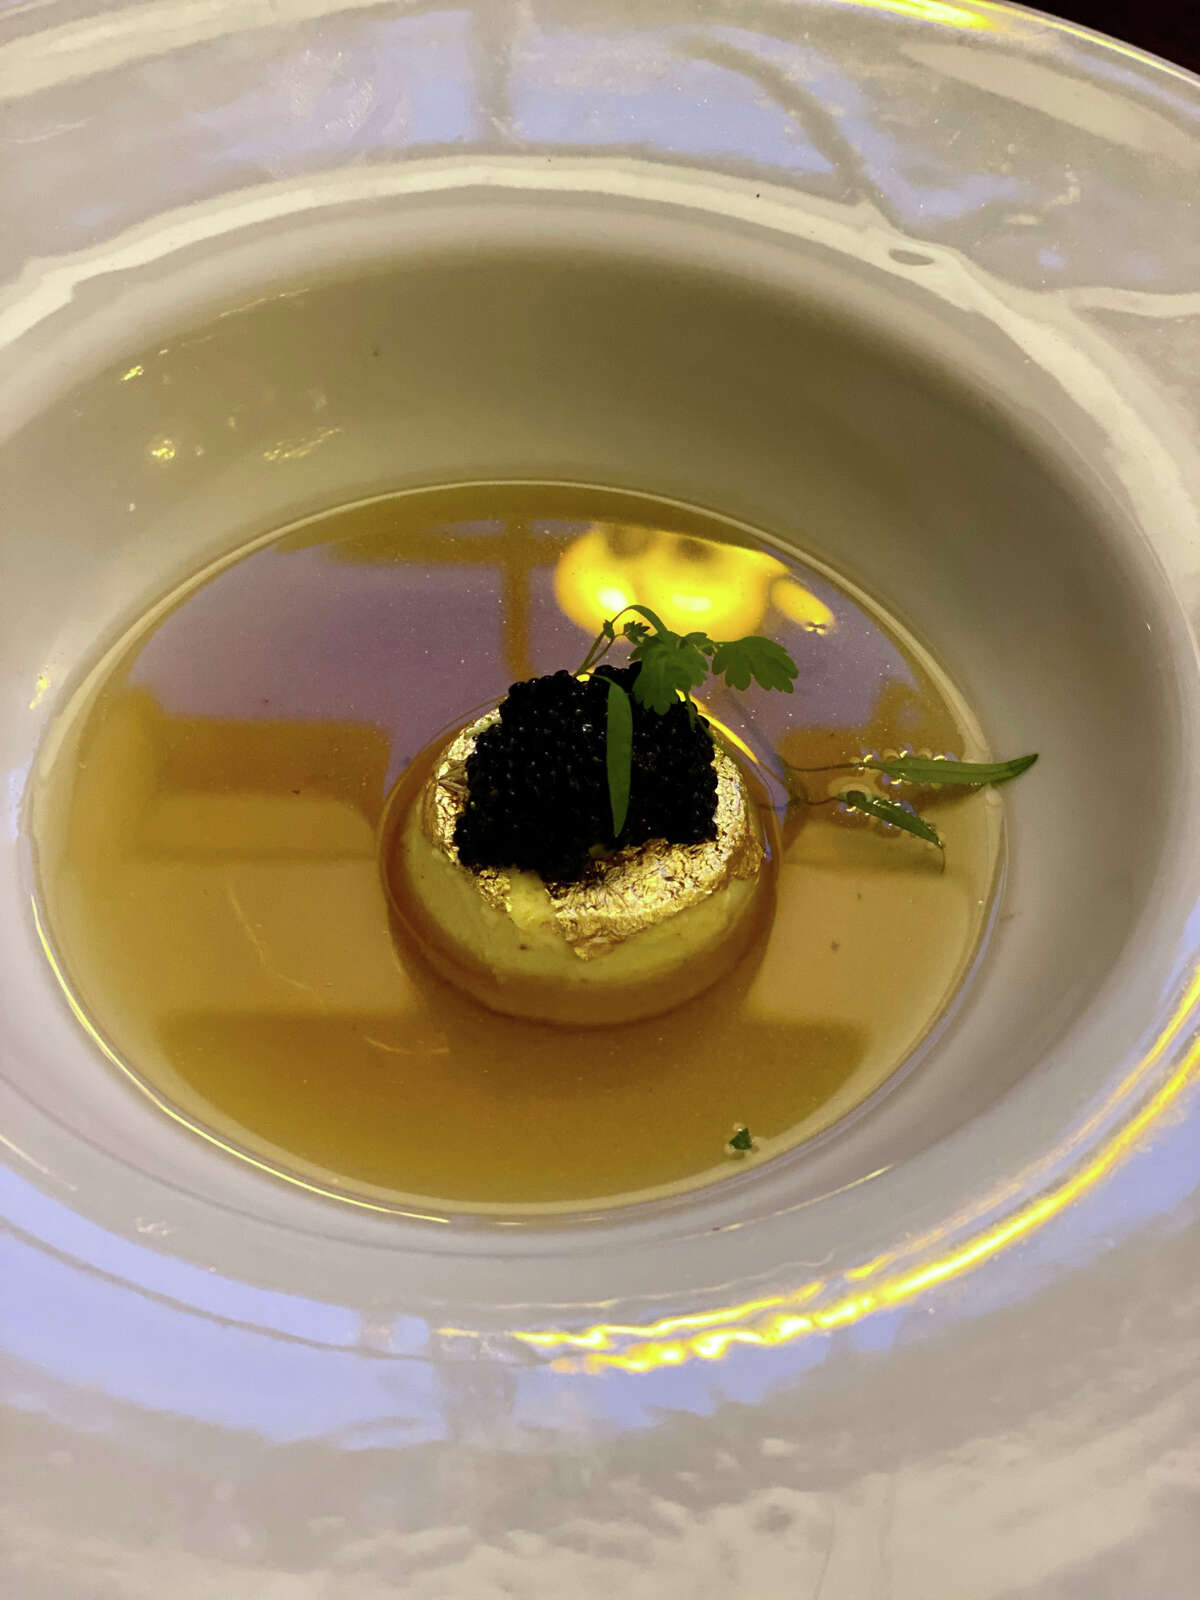 Edible gold foil wraps a savory custard that is topped with caviar and bathed in crystal-clear bison consommé at Jack's Oyster House in Albany.